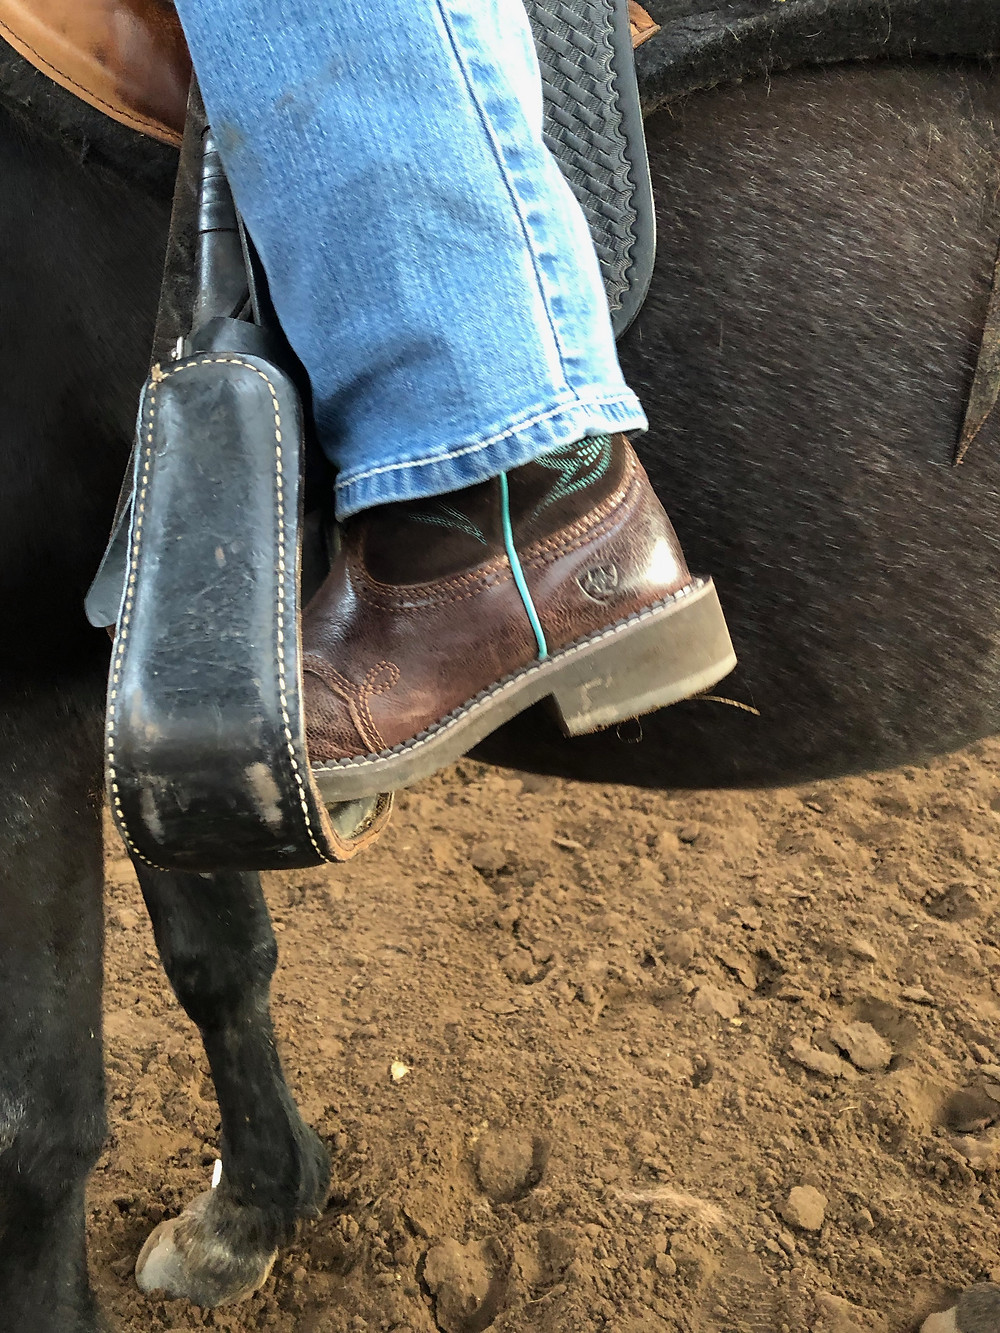 This is a dangerous way to ride.  When you ride on your toes, instead of your heels, you increase your chance of falling forward onto or over your horse's neck.